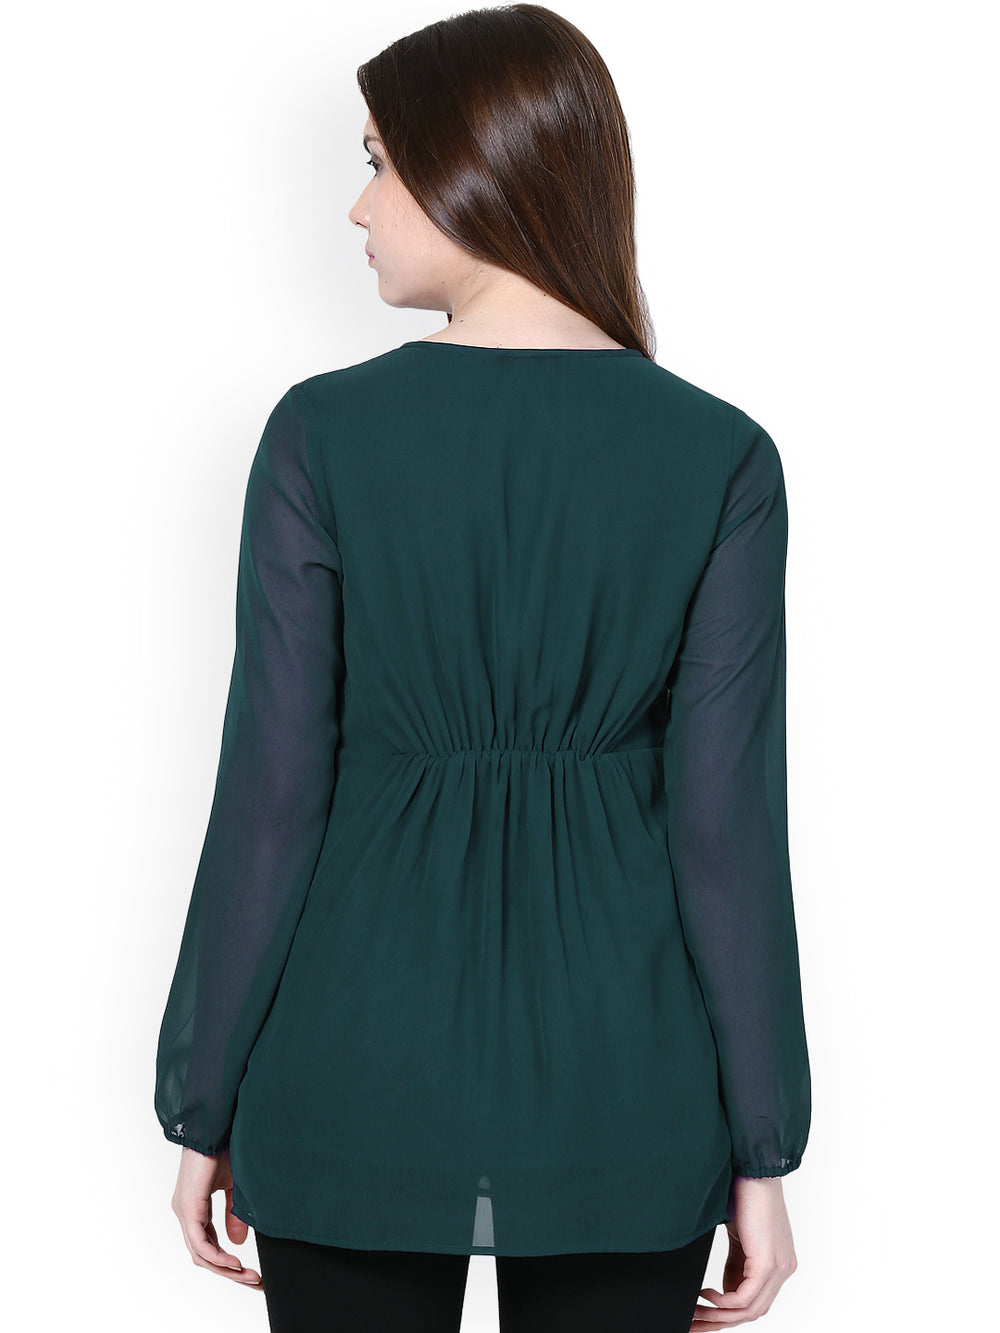 Besiva Green Top